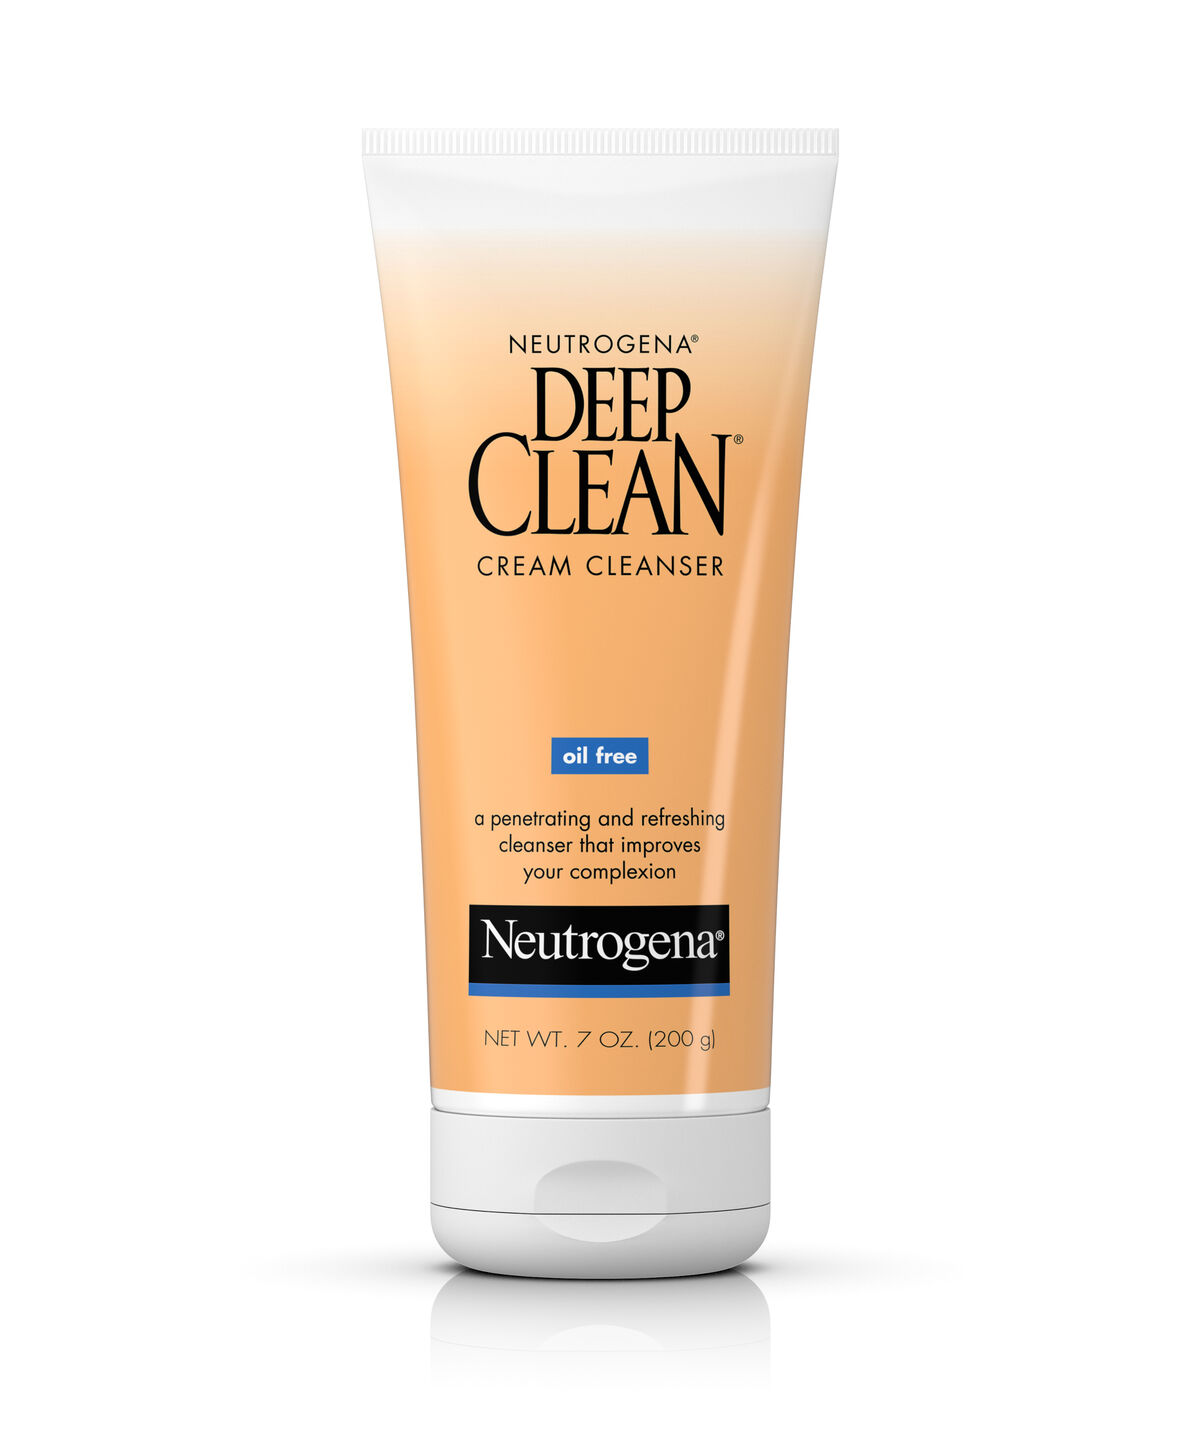 come clean creamy cleanser review